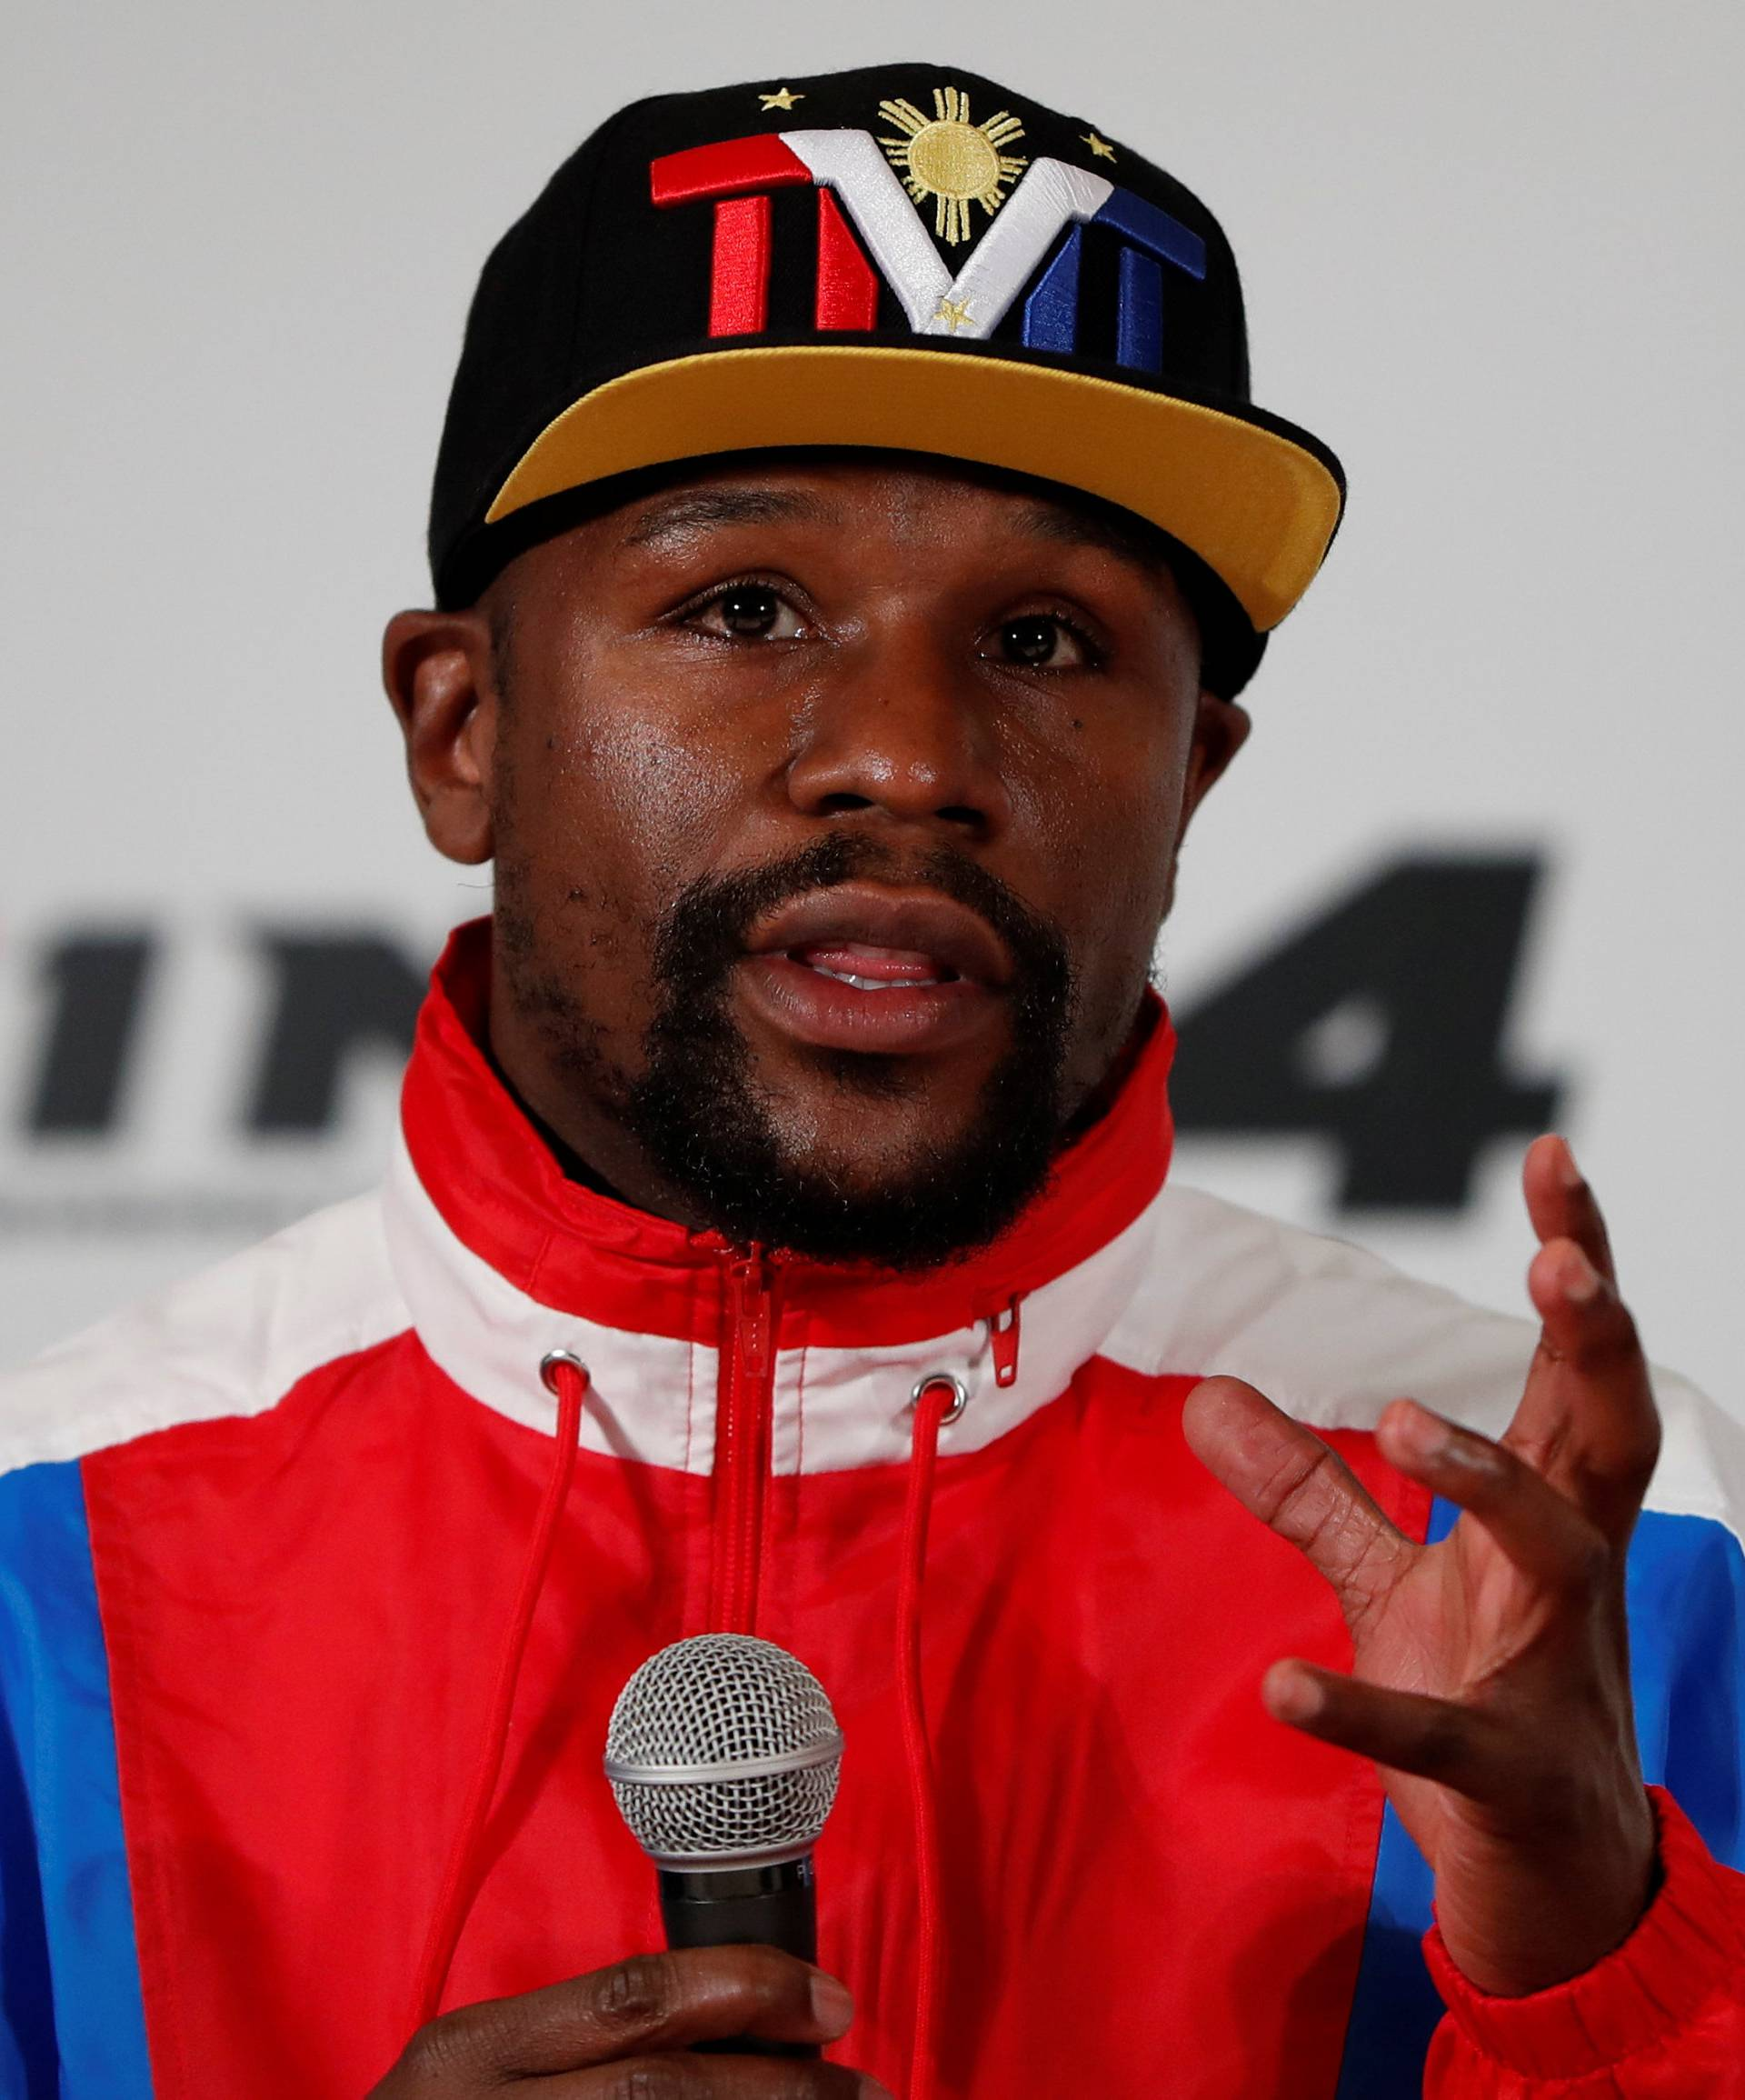 Undefeated boxer Floyd Mayweather Jr. of the U.S. attends a news conference inn Tokyo